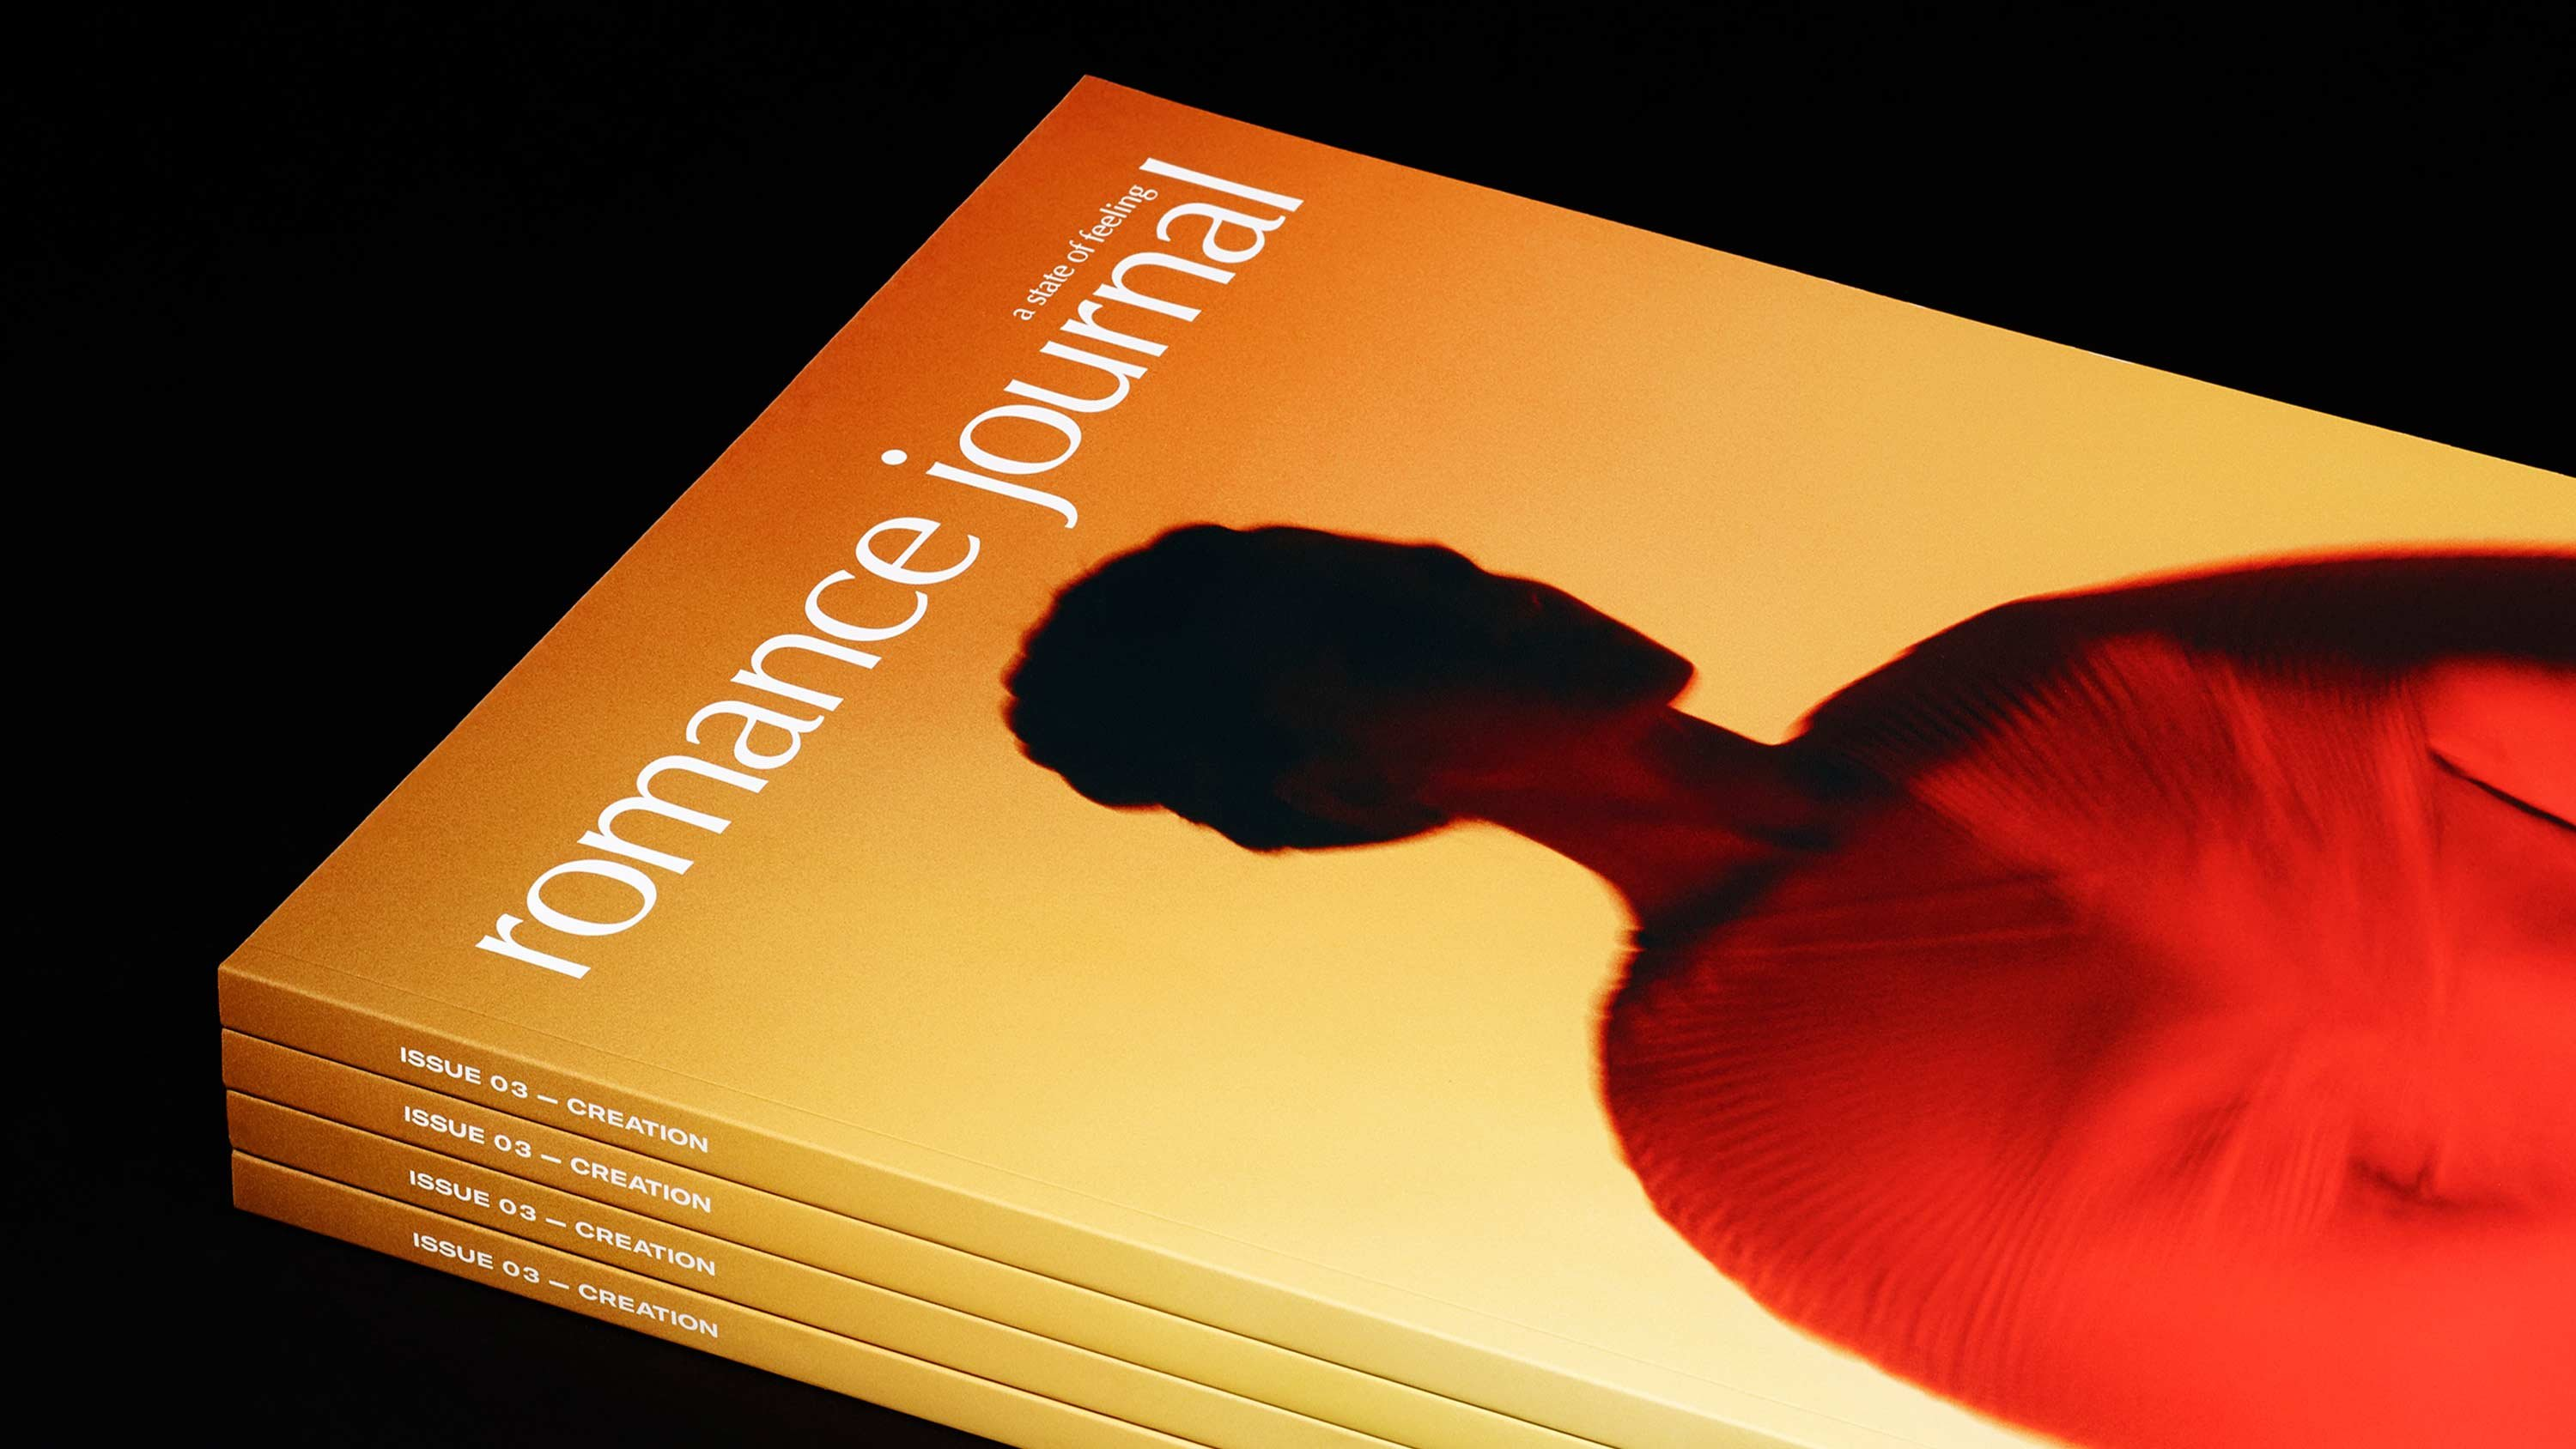 Romance Journal issue 03 cover – Creation. Publication design, art direction, print design by RoAndCo